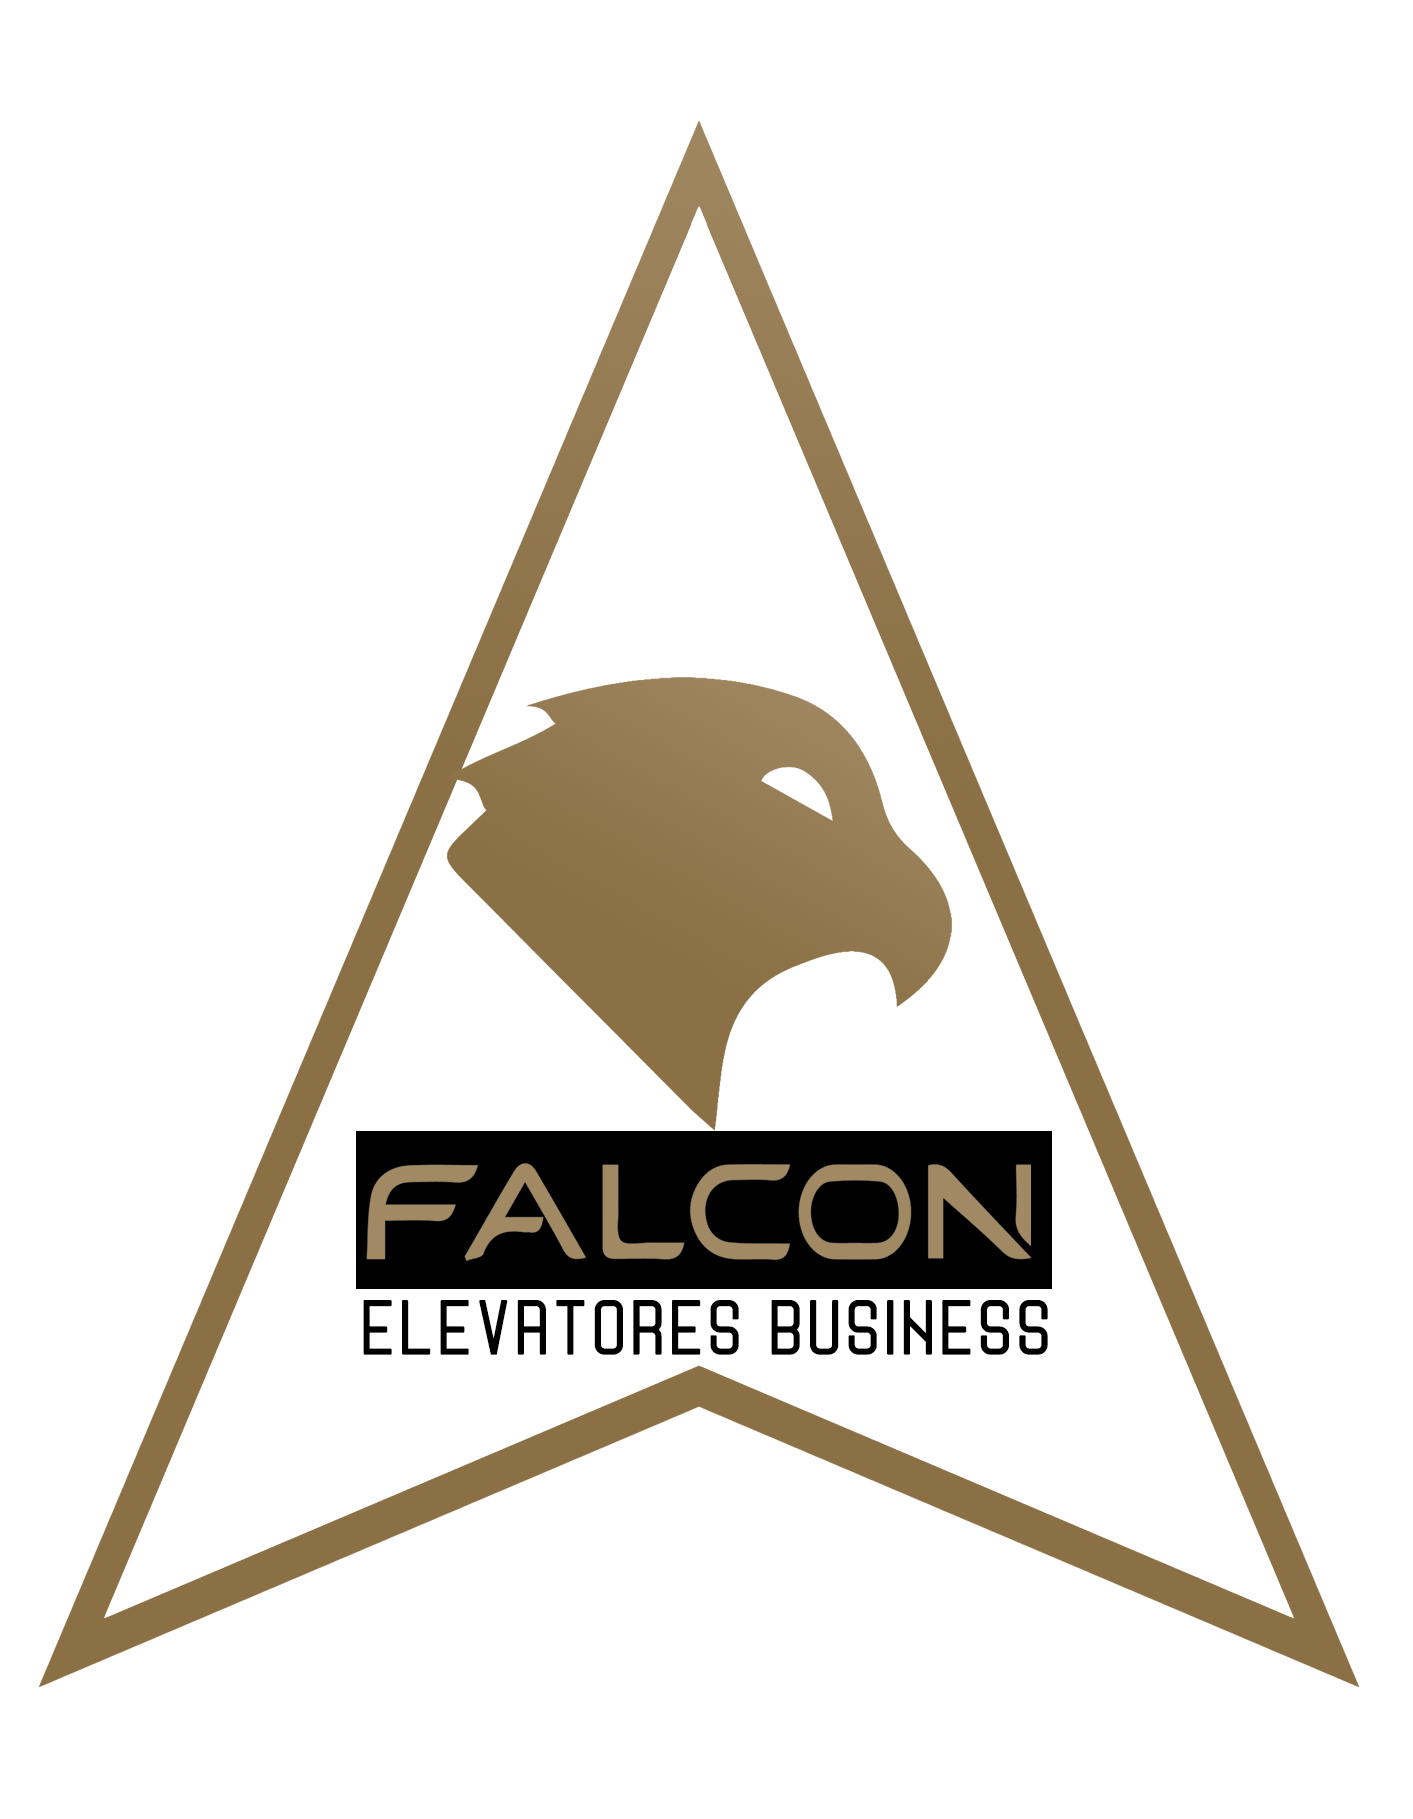 http://aasansor.ir/images/product/3_type_of_parts/5_reil/falcon/falcon1.png